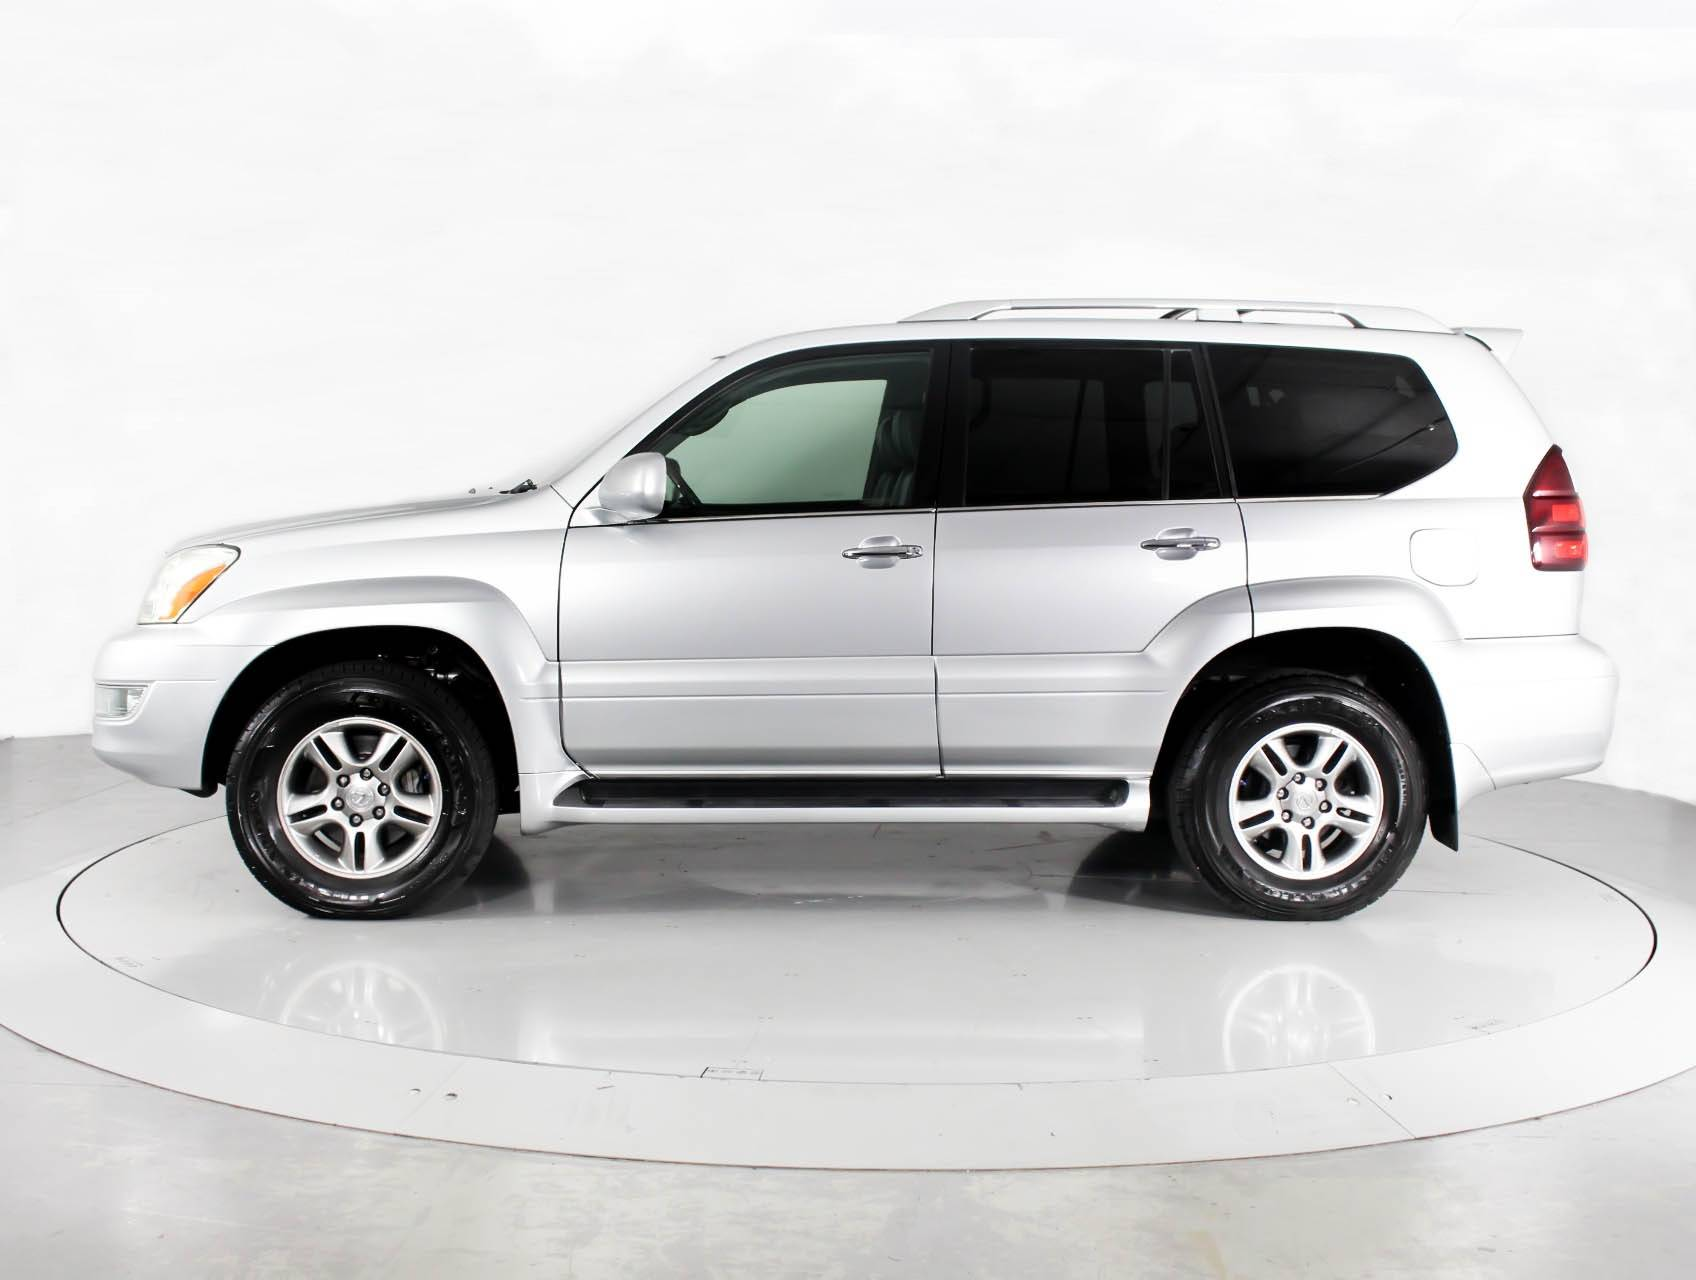 in sale lx resource vehiclesearchresults models for new point high lexus serving vehicle your greensboro